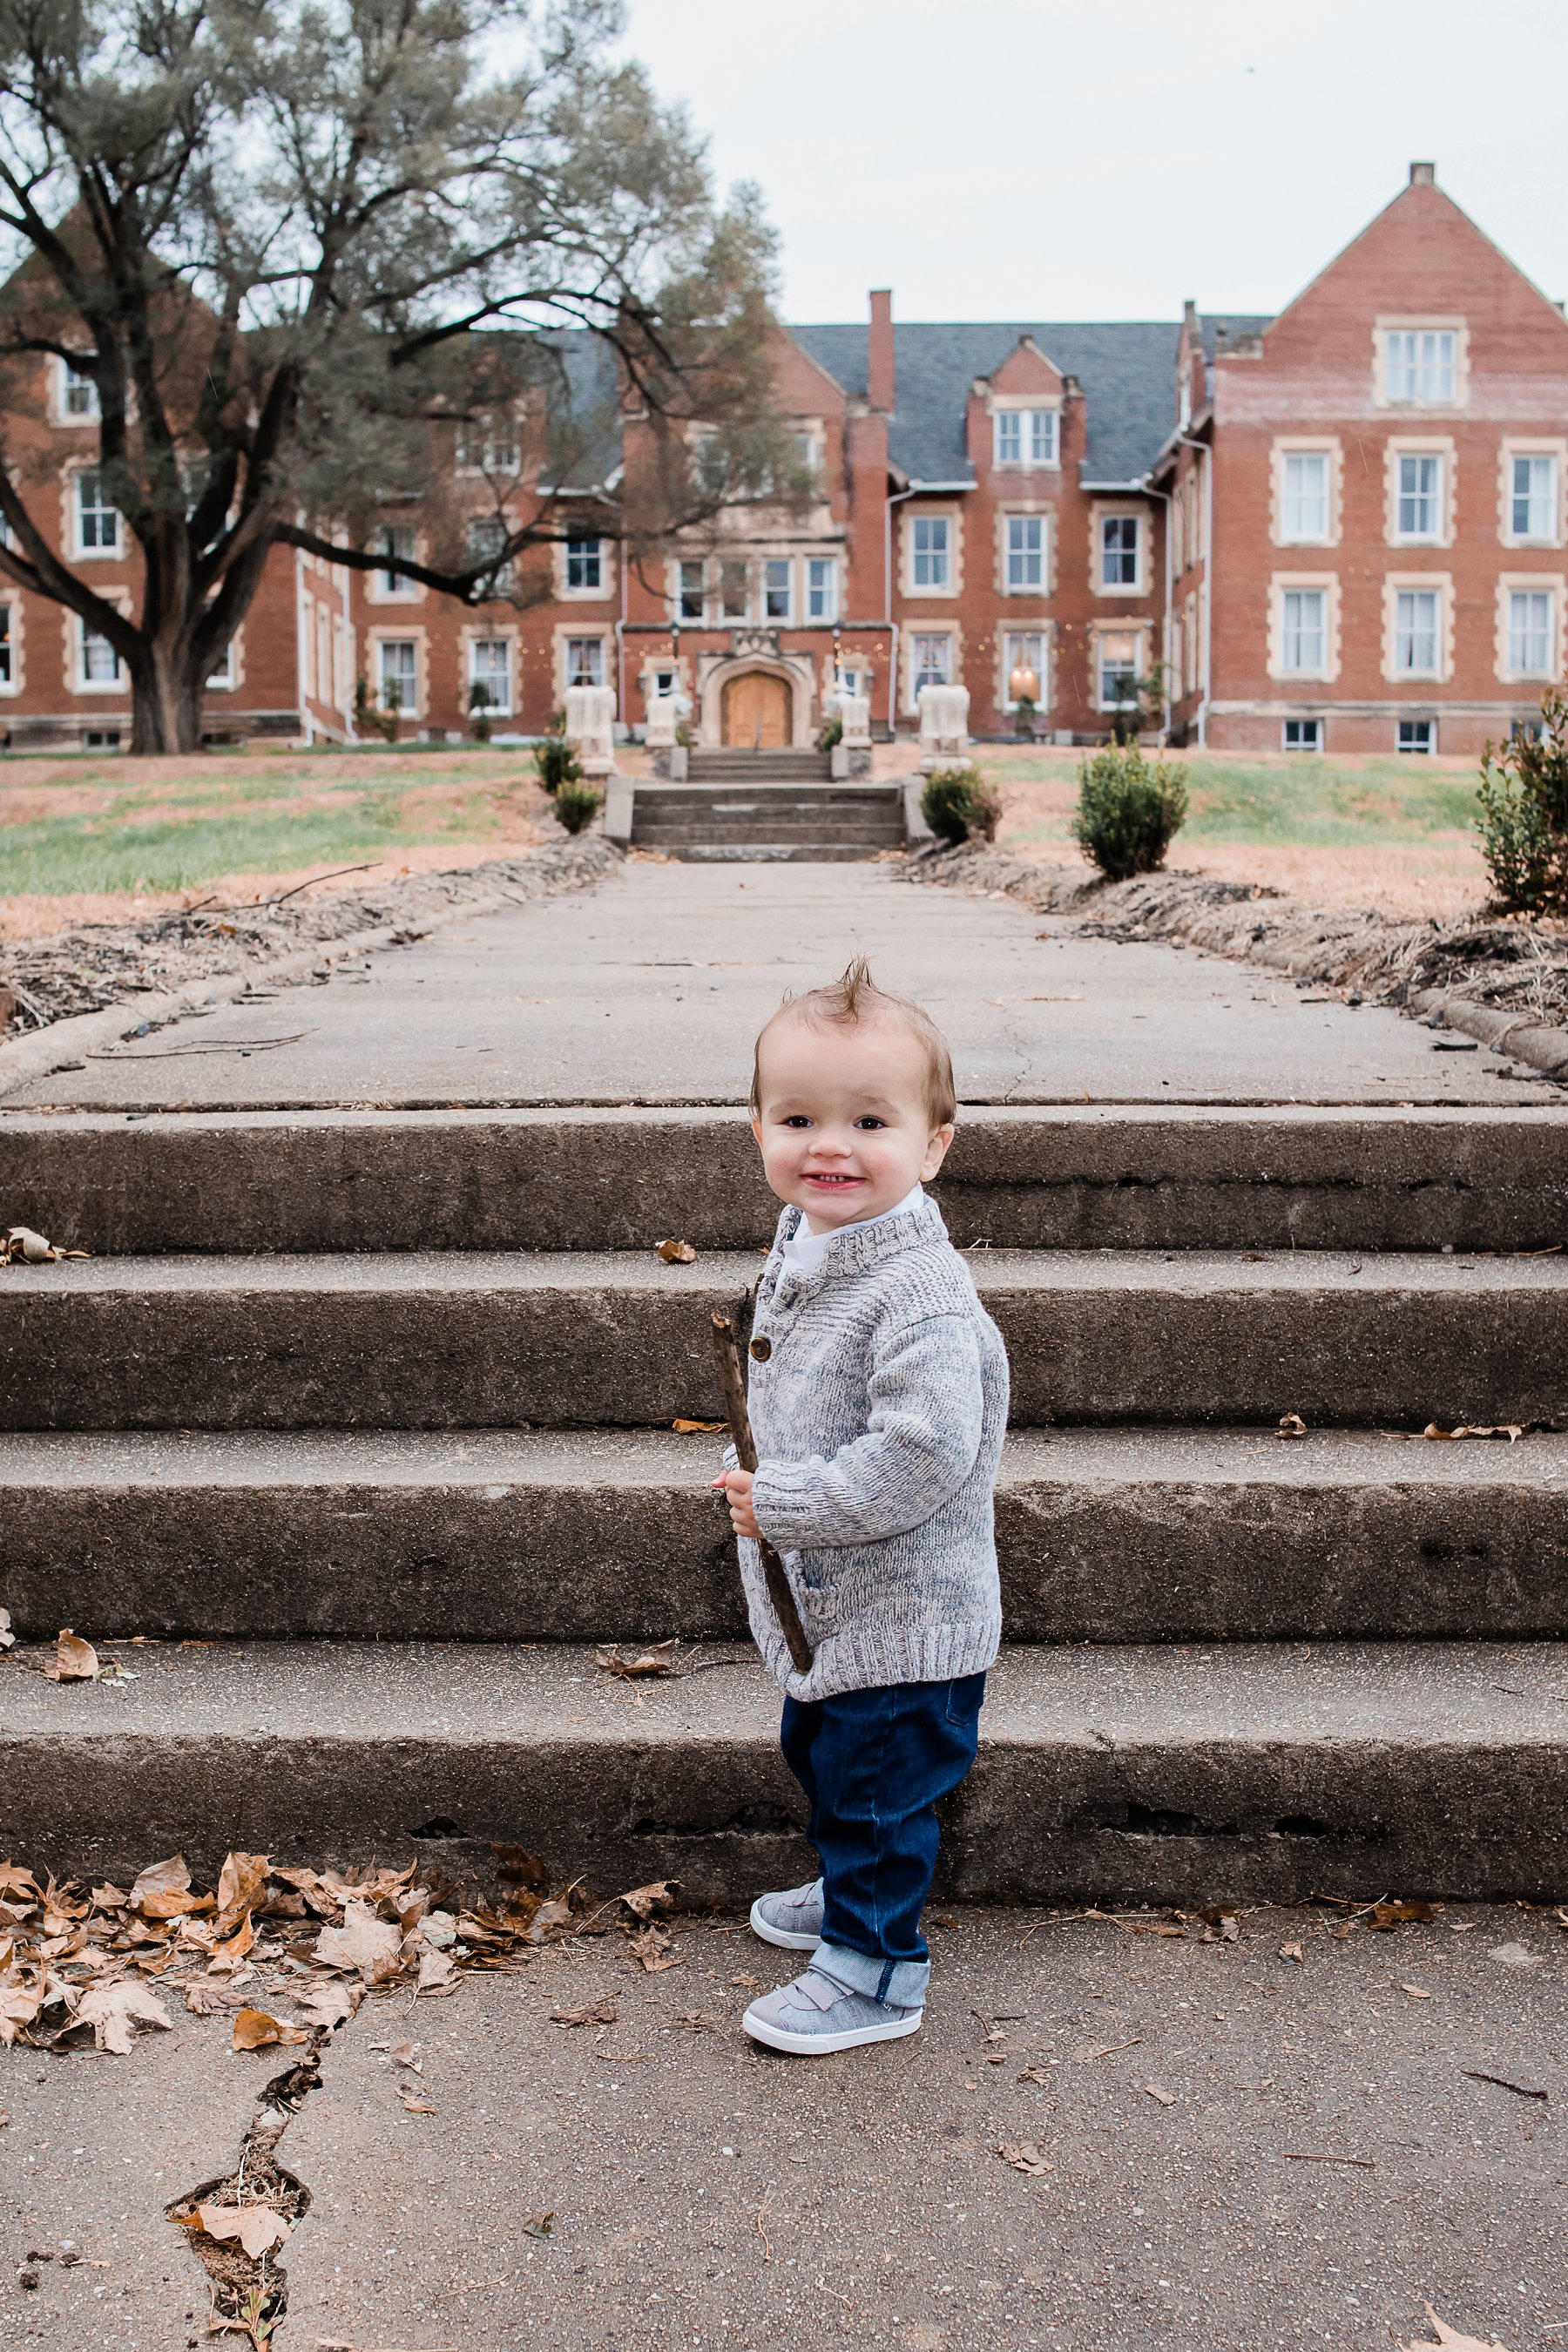 Fall Family Photography at Belvoir WInery by Family Photographer in Kansas City, Merry Ohler (10)